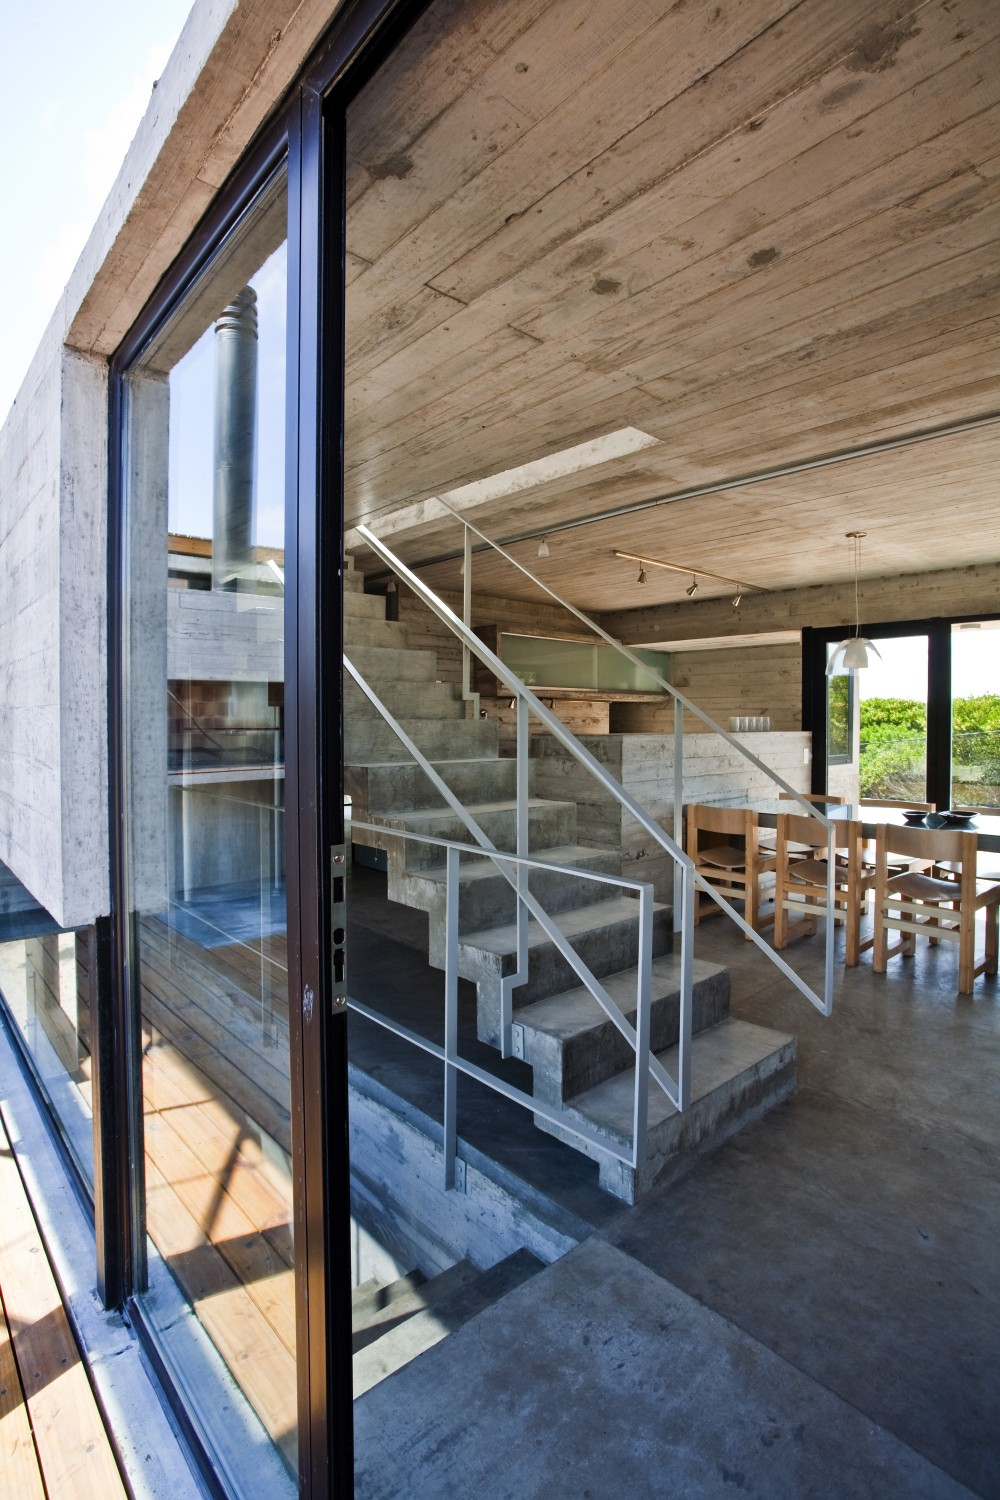 529d3389e8e44e553d00003c_casa-en-la-playa-bak-architects_00265362-1000x1500